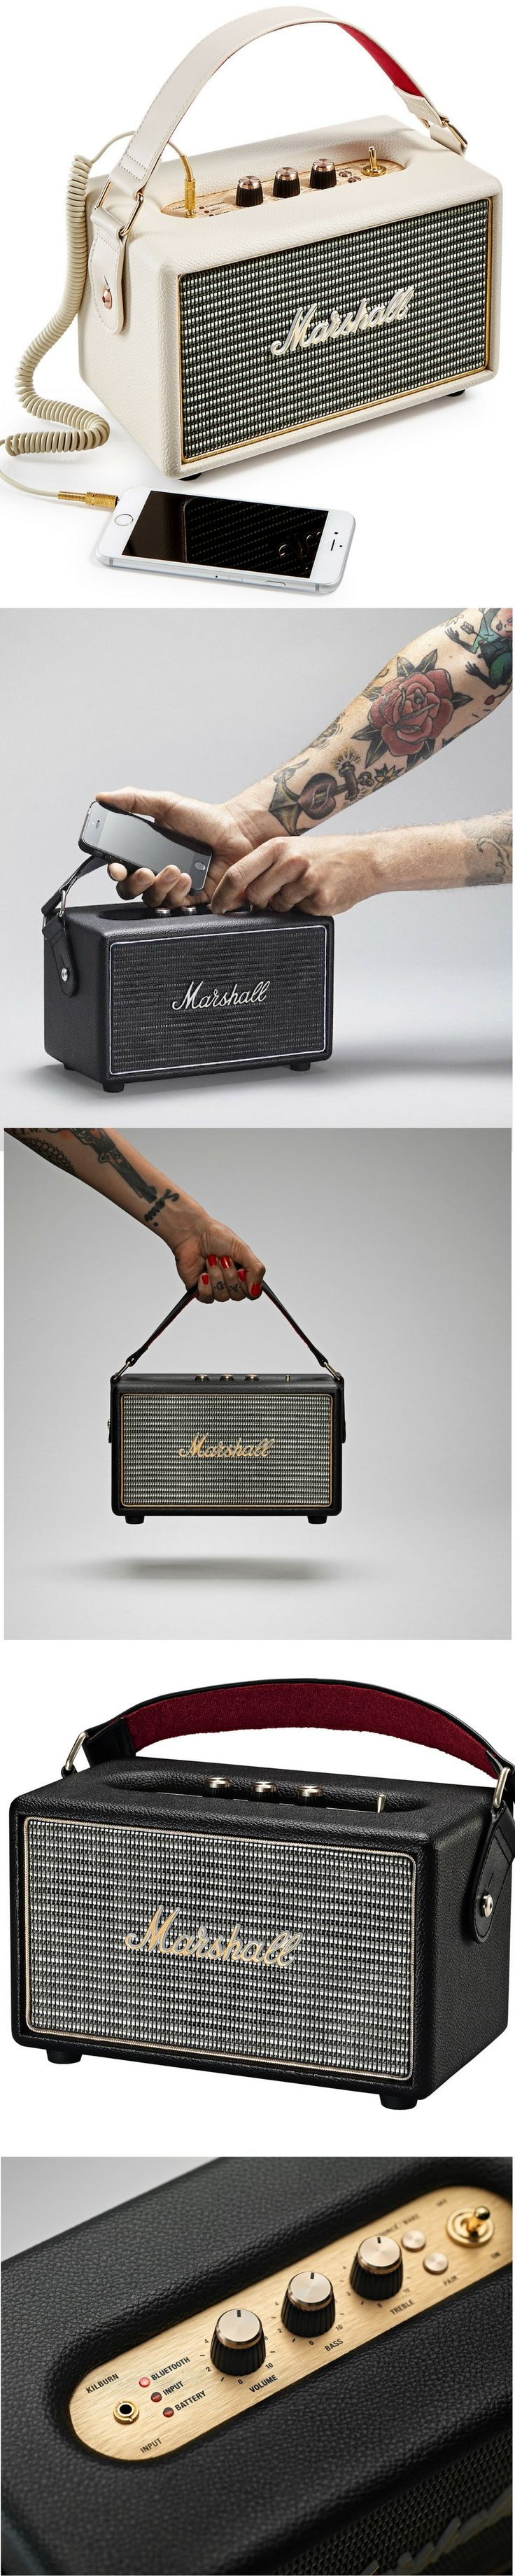 OMG I LOVE the beauty of combining old/classy/original design with new technology (Bluetooth and advanced audio tech). I believe it may be one of my personal business goals to create something with this criteria in mind.